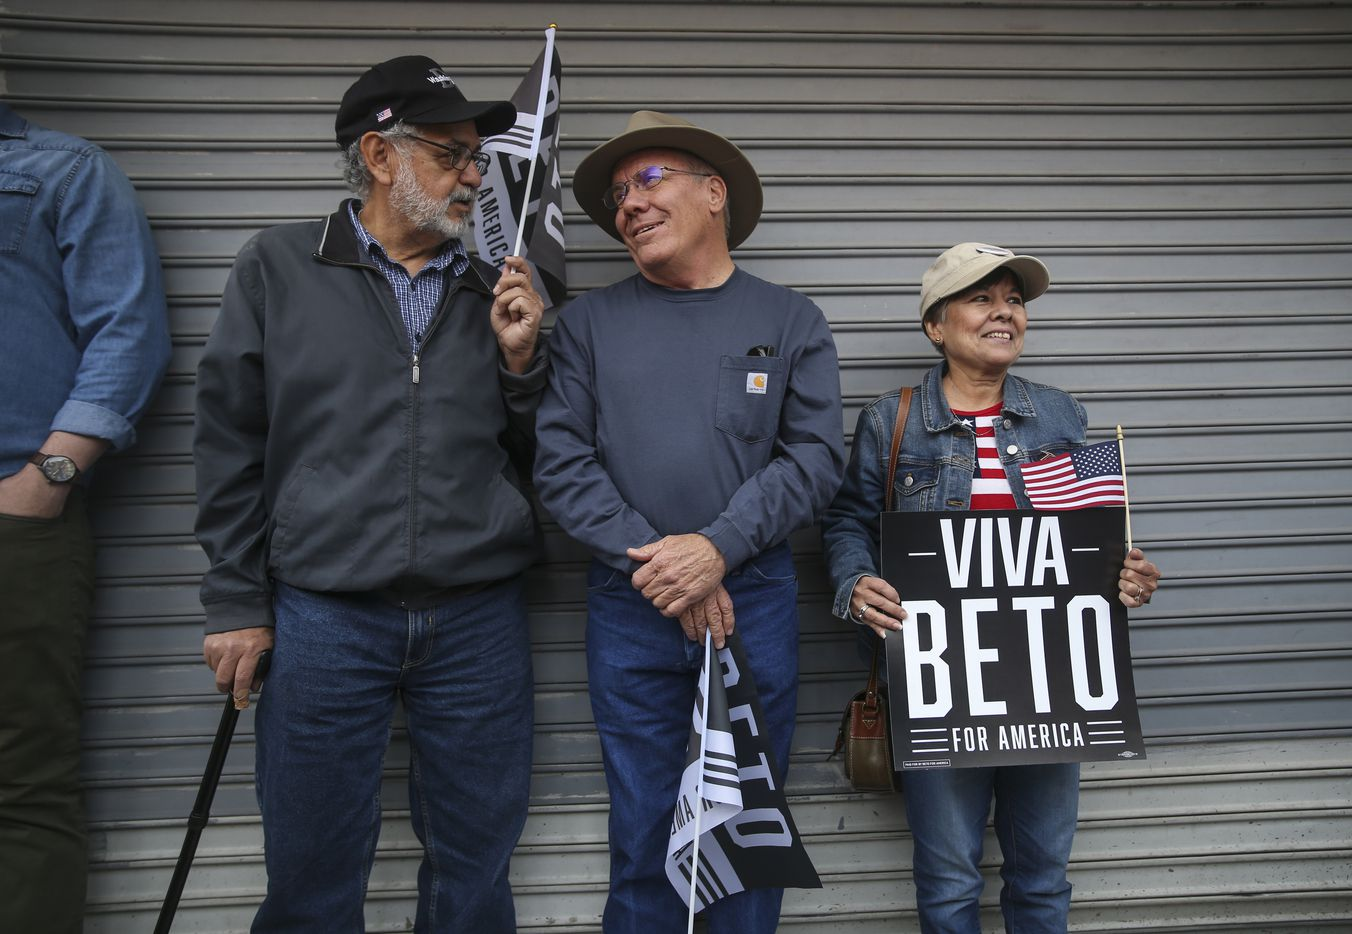 """From left: Carlos Chavez,. Bill Smith and Stella Alvarez, all of El Paso, talked before the start of a Beto O'Rourke presidential campaign kickoff rally in downtown El Paso on Saturday, March 30, 2019. """"It's his decency representing the USA,"""" Alvarez said of Beto O'Rourke. """"He stands for everyone. He stands for humanity."""""""